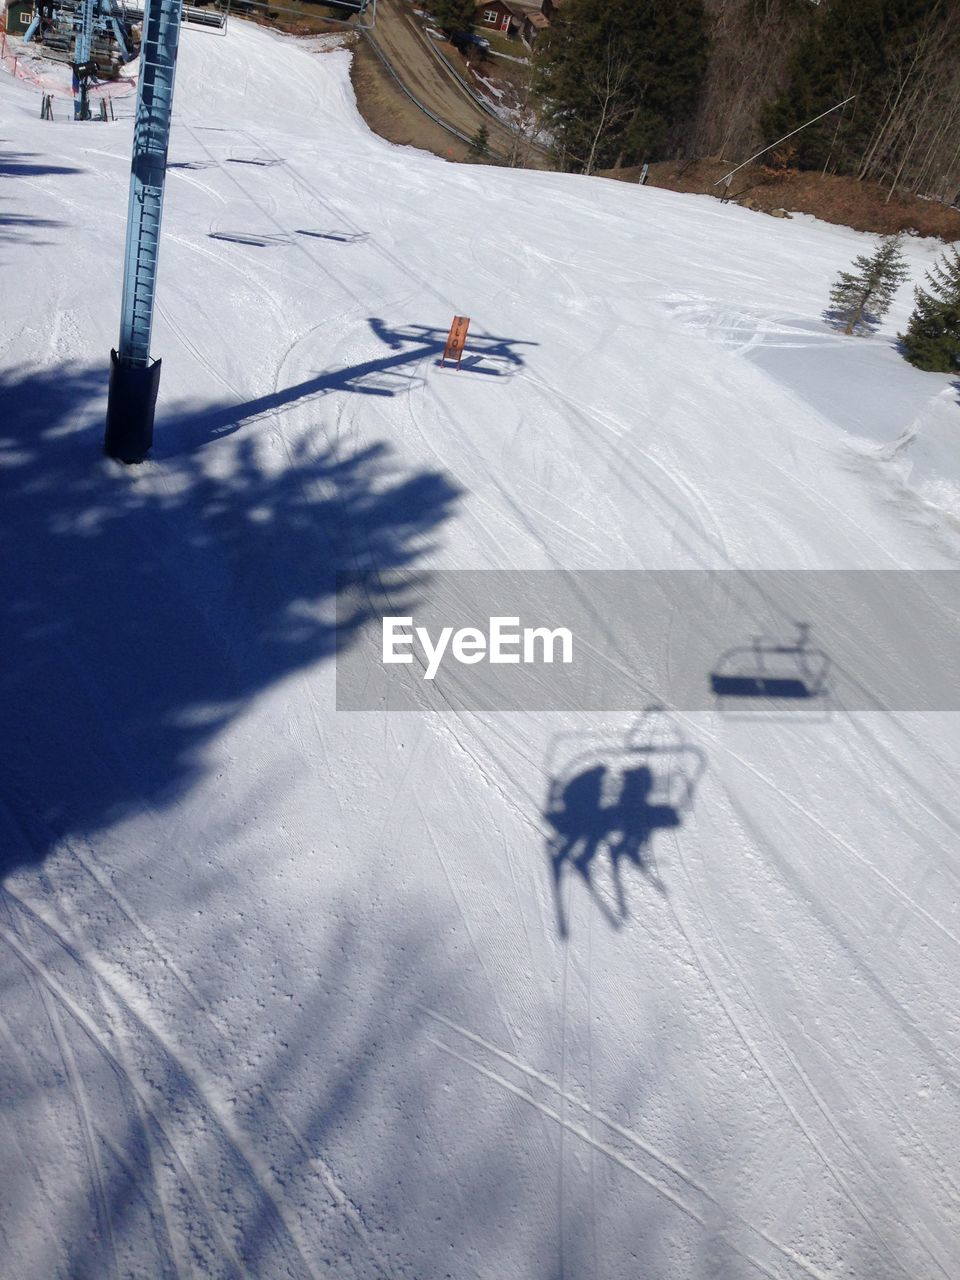 snow, winter, cold temperature, shadow, skiing, winter sport, ski holiday, high angle view, white color, sport, sunlight, nature, day, motion, outdoors, landscape, adventure, snowboarding, ski lift, extreme sports, warm clothing, one person, people